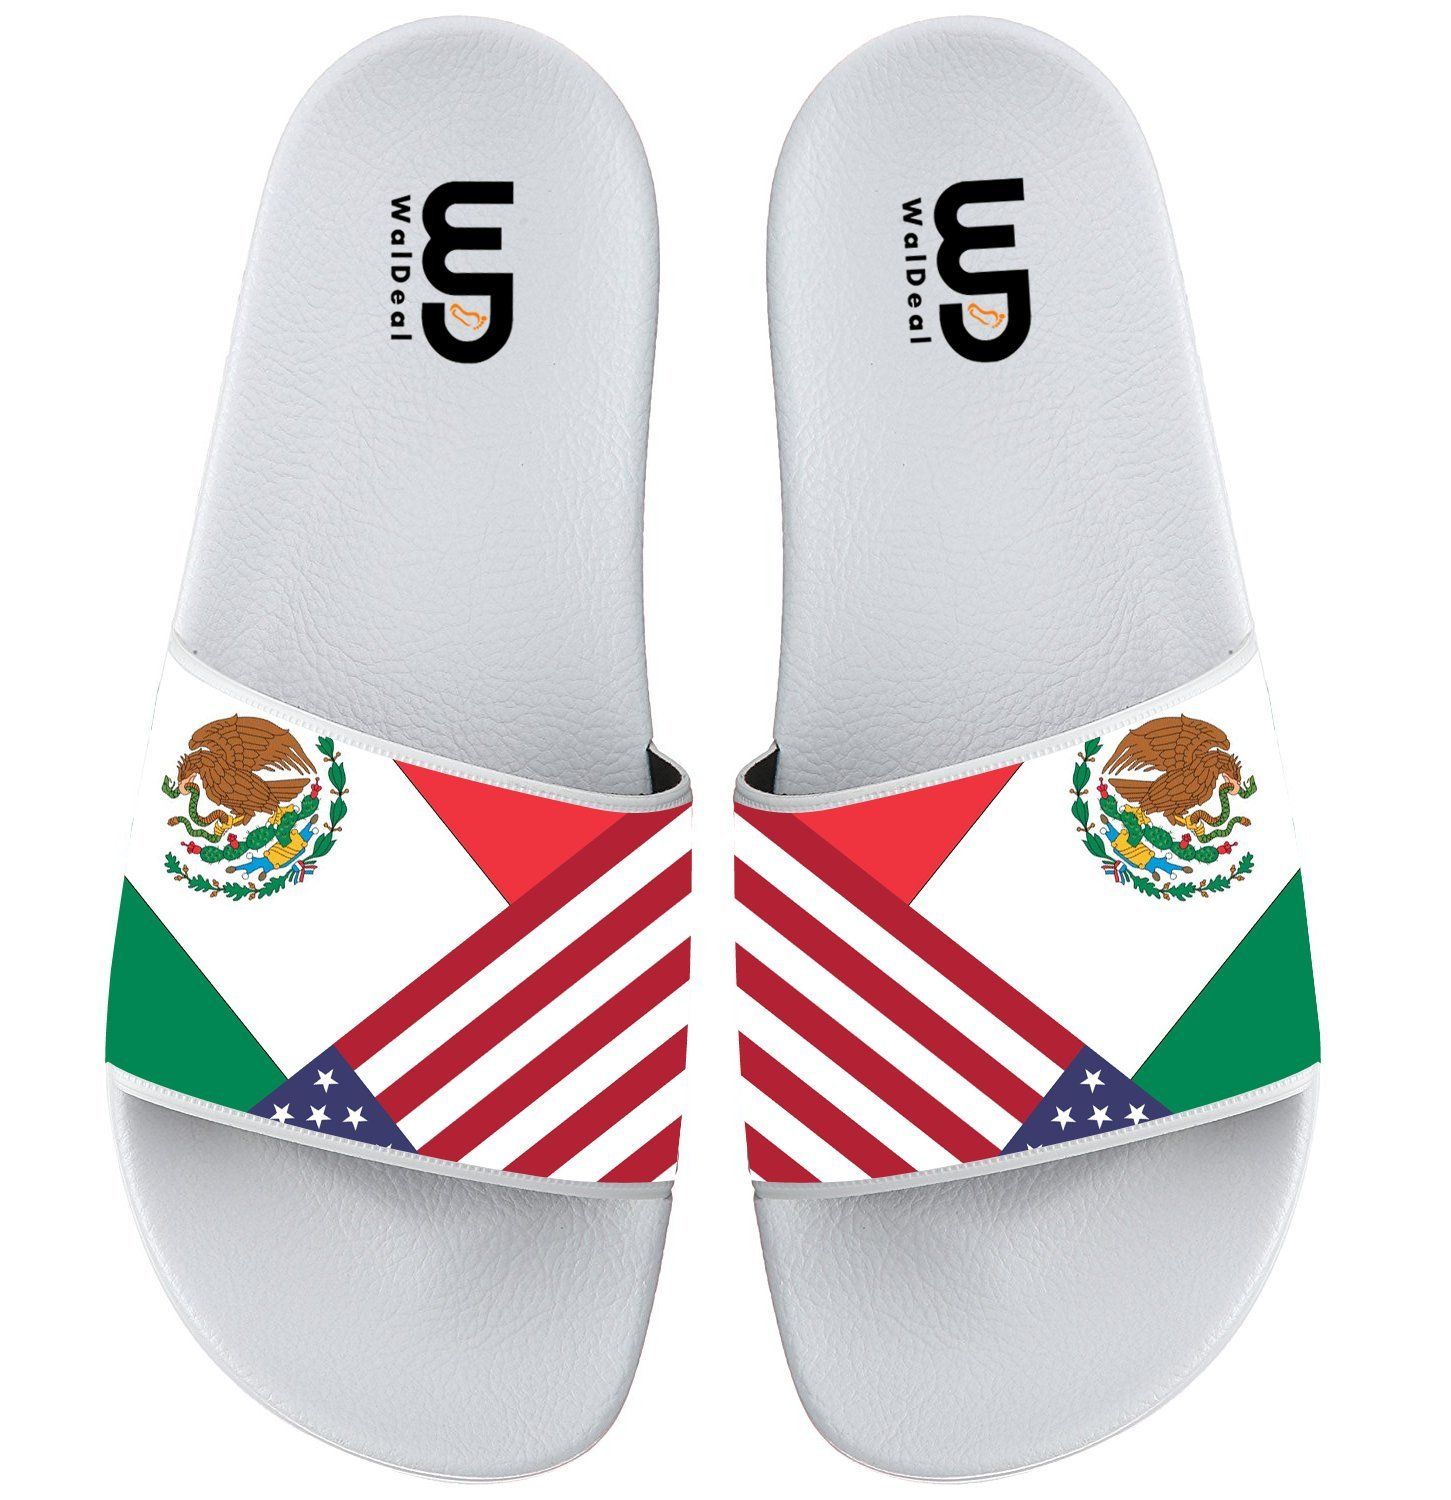 Mexican Flag Summer Non-slip Slide Sandals Home Shoes Beach Swim Flip Flops Indoor and Outdoor Slipper Women Men B075FM1FF8 8 B(M) US|American Flag